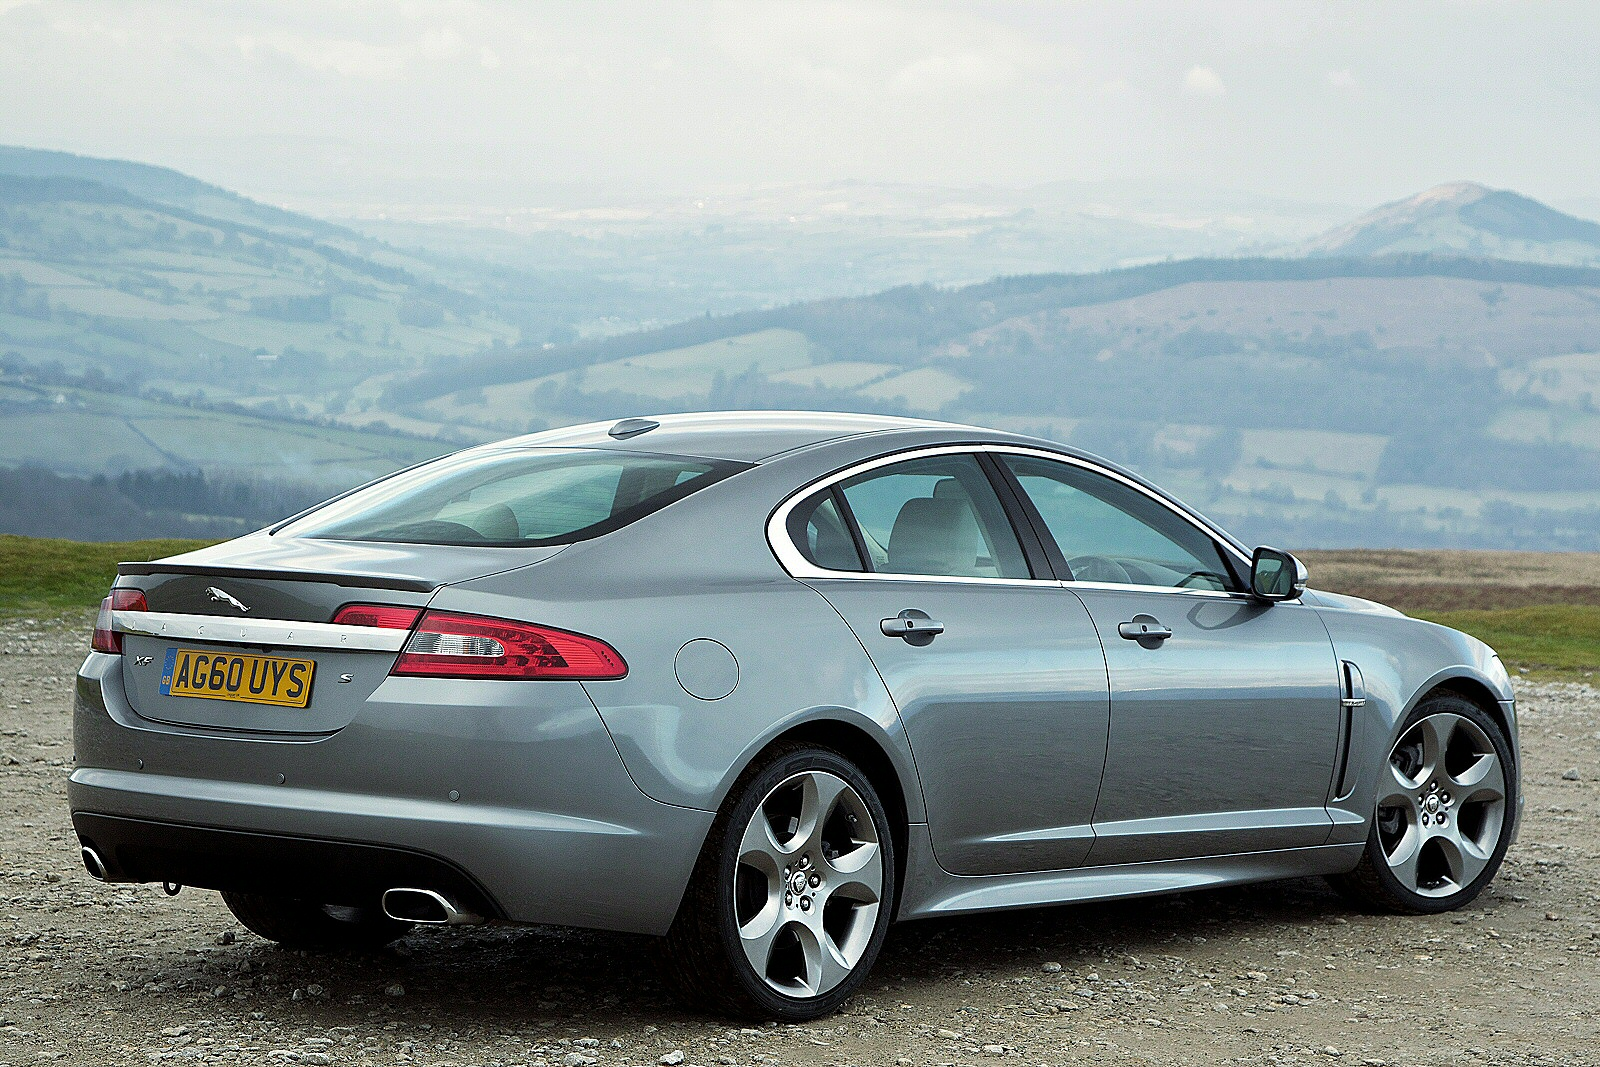 classifieds cars jaguar xfr supercharged sale buckinghamshire used for pistonheads xf in